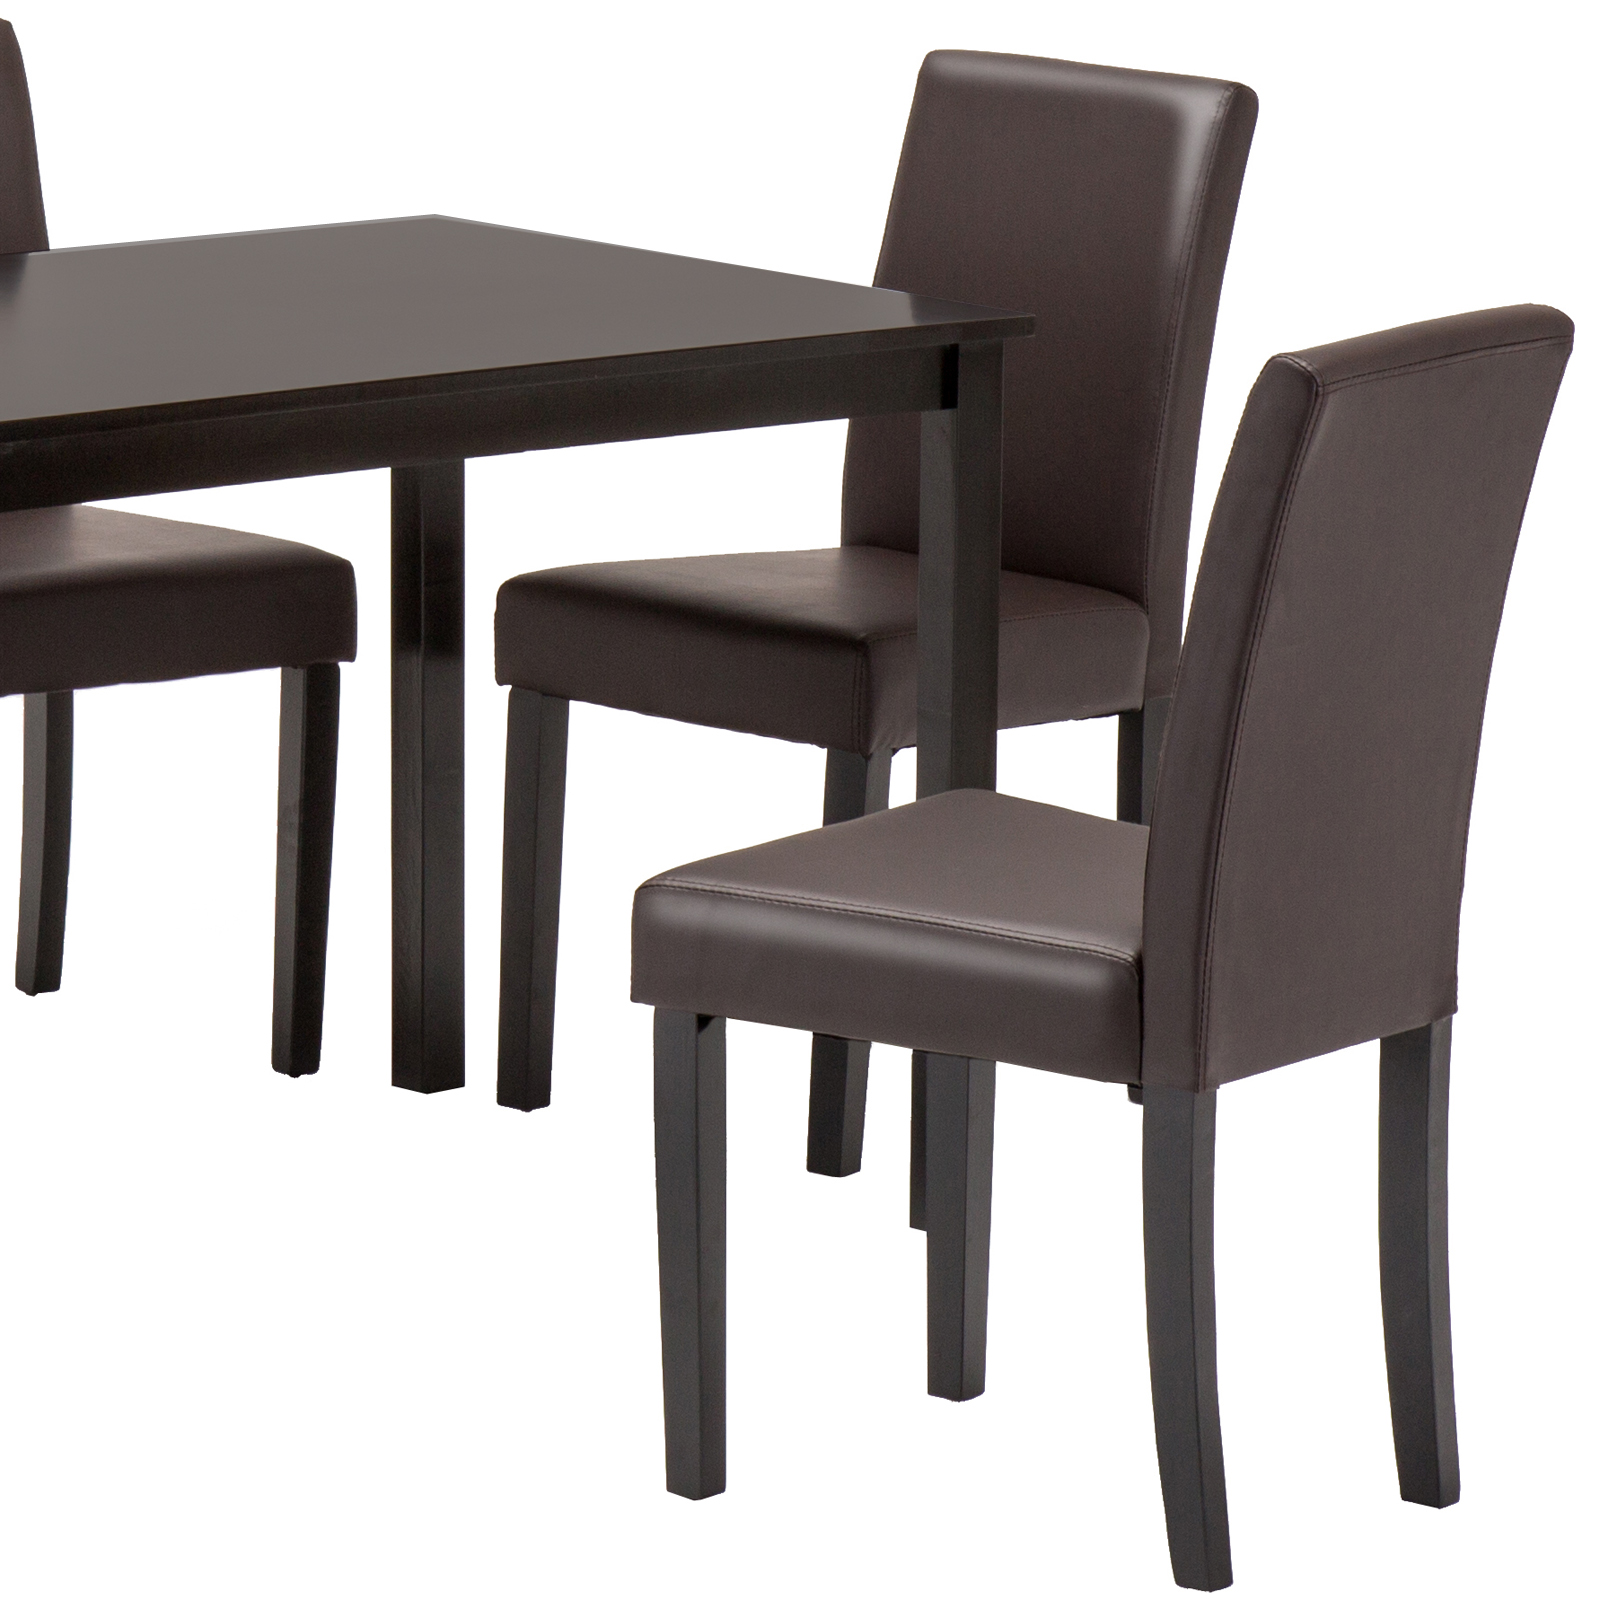 5 Piece Wood White Dining Table Set 4 Chairs Room Kitchen: 5 Piece Wood Dining Table Set 4 Chairs Kitchen Dinette